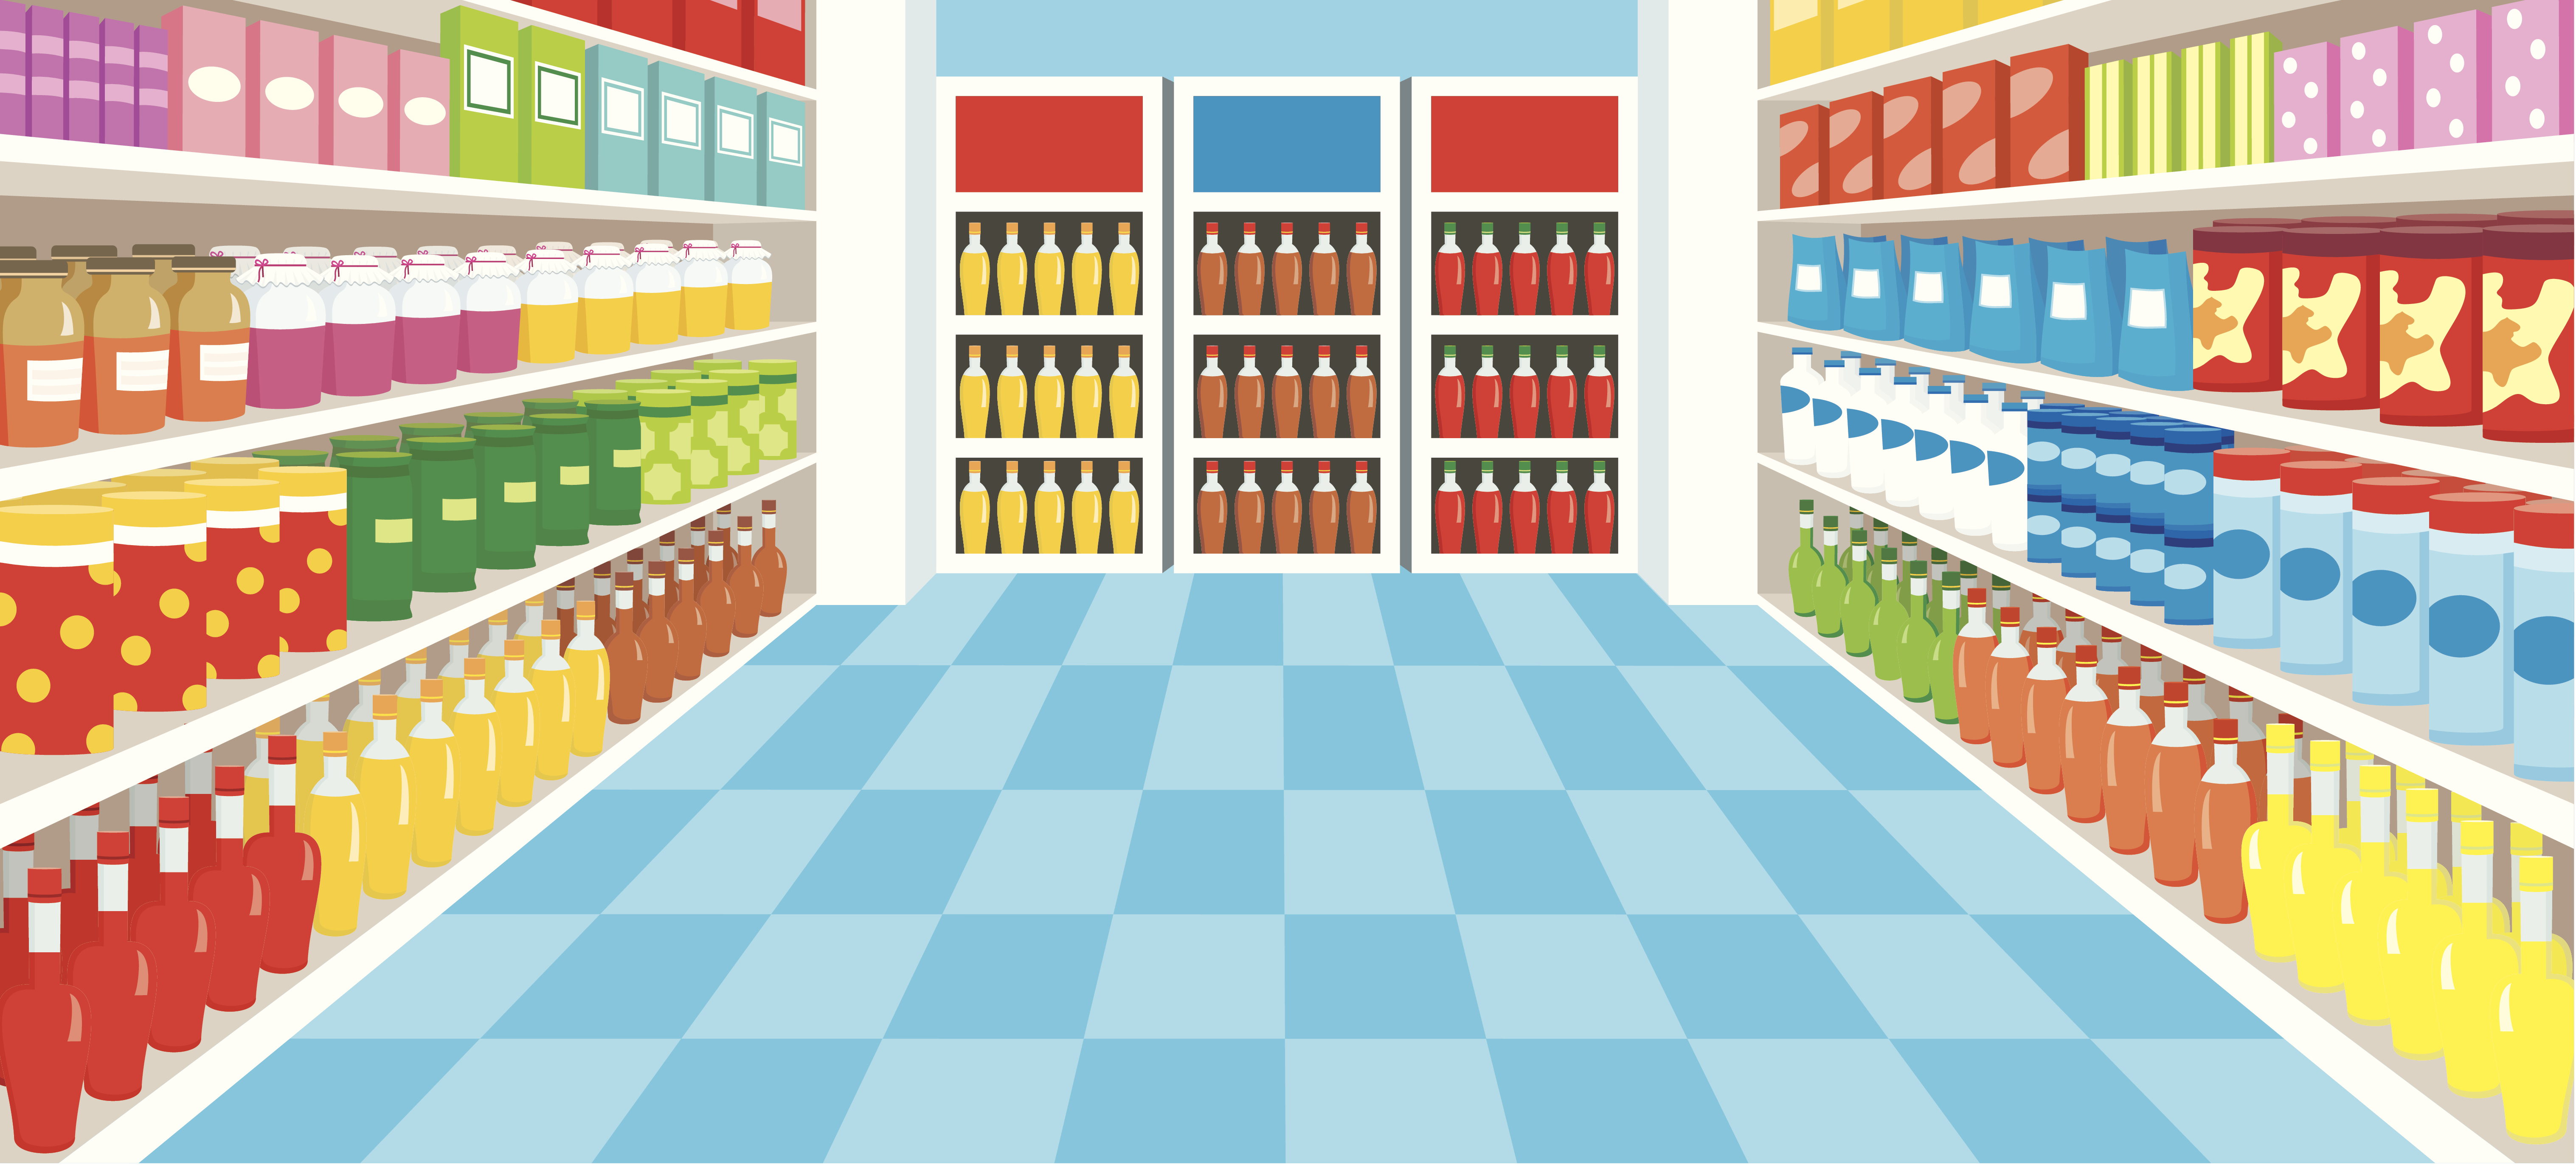 Illustration of a beverage aisle in a store.